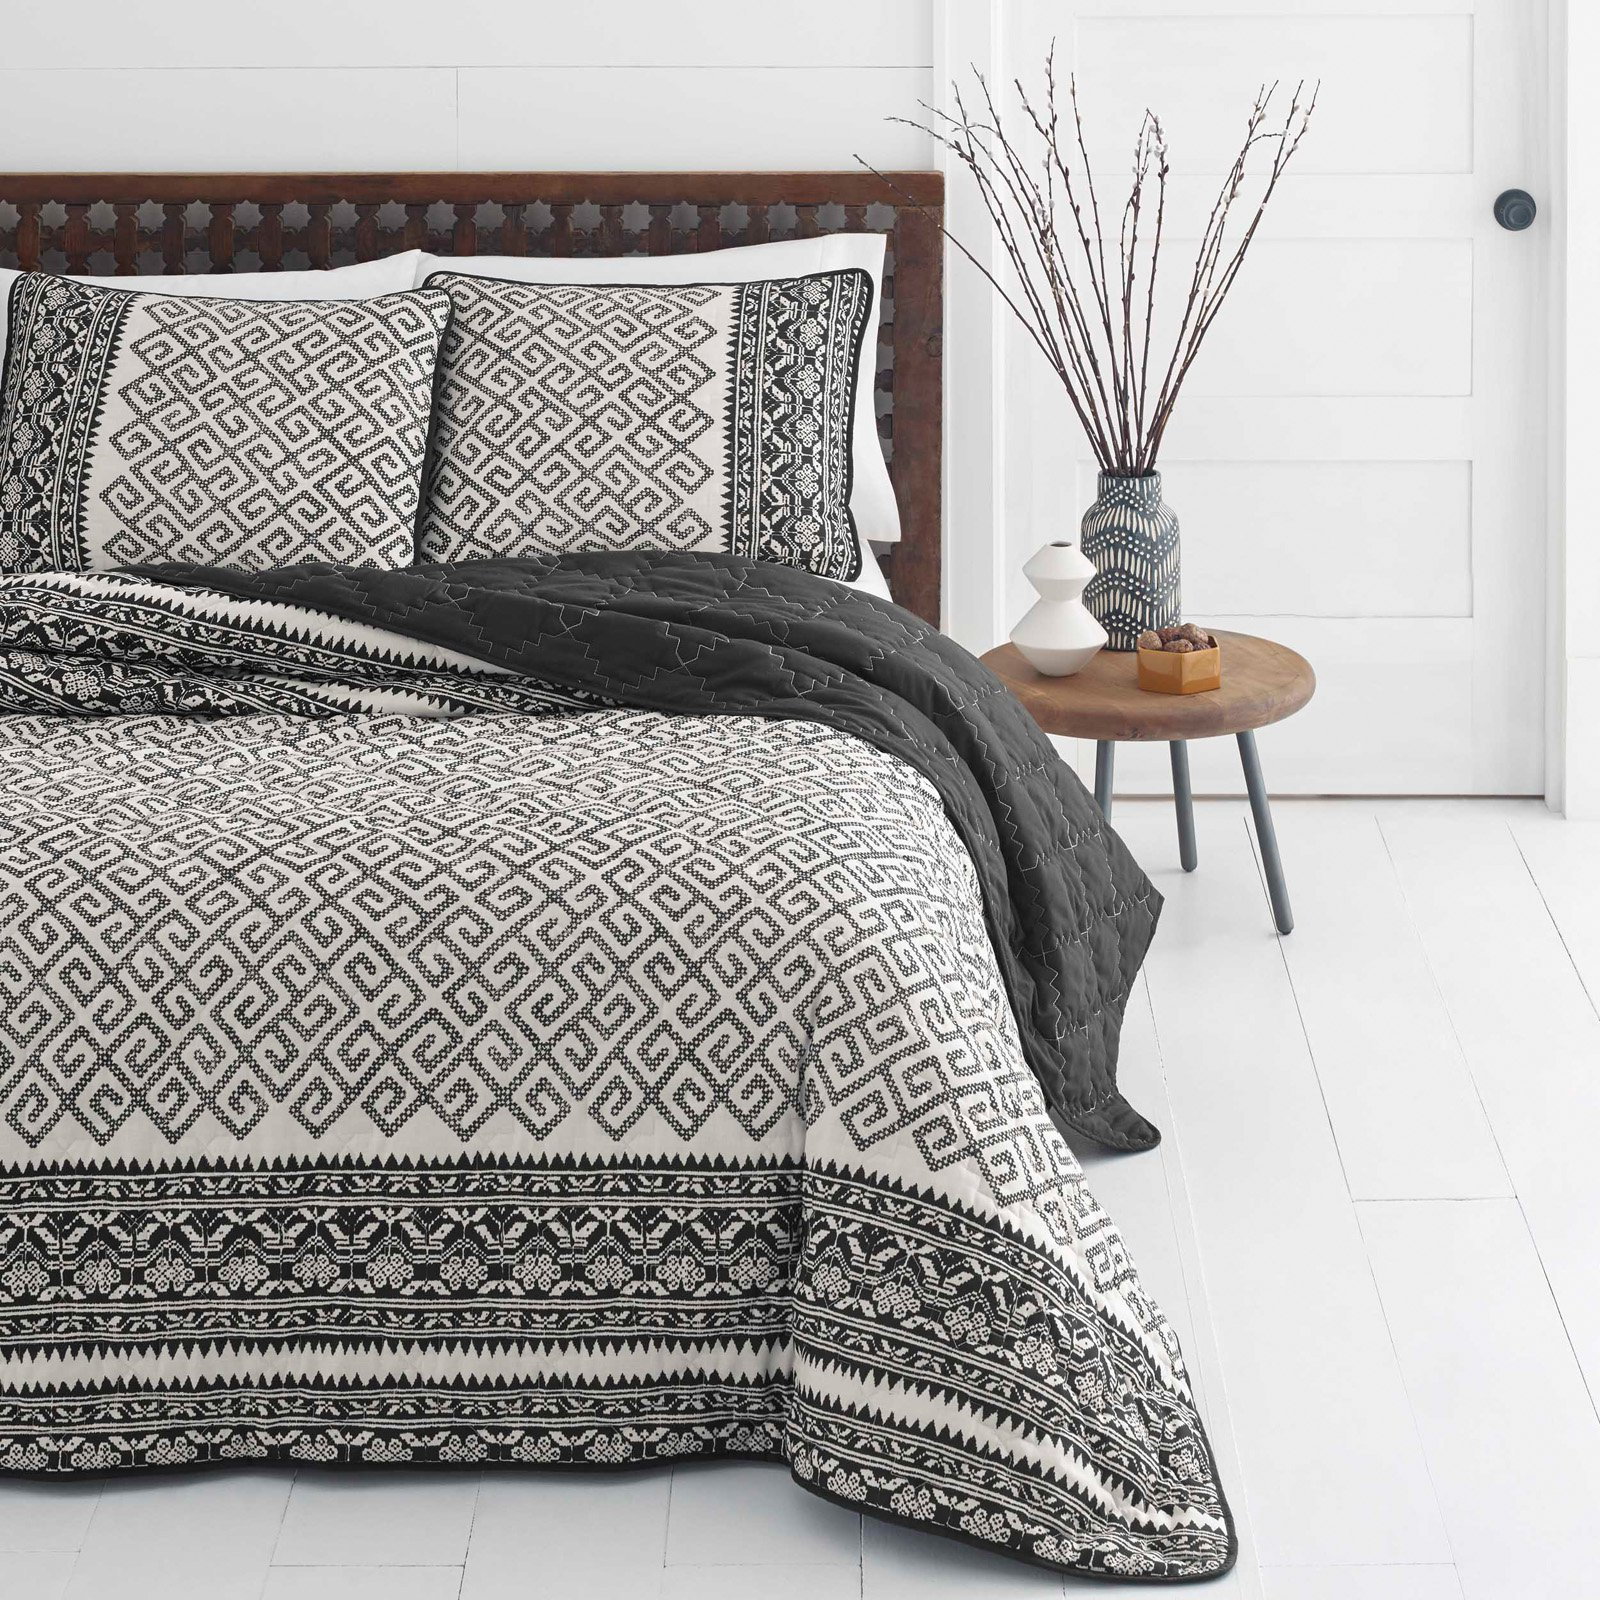 Azalea Skye Greca Borders Medium Beige Quilt Set, Full/Queen